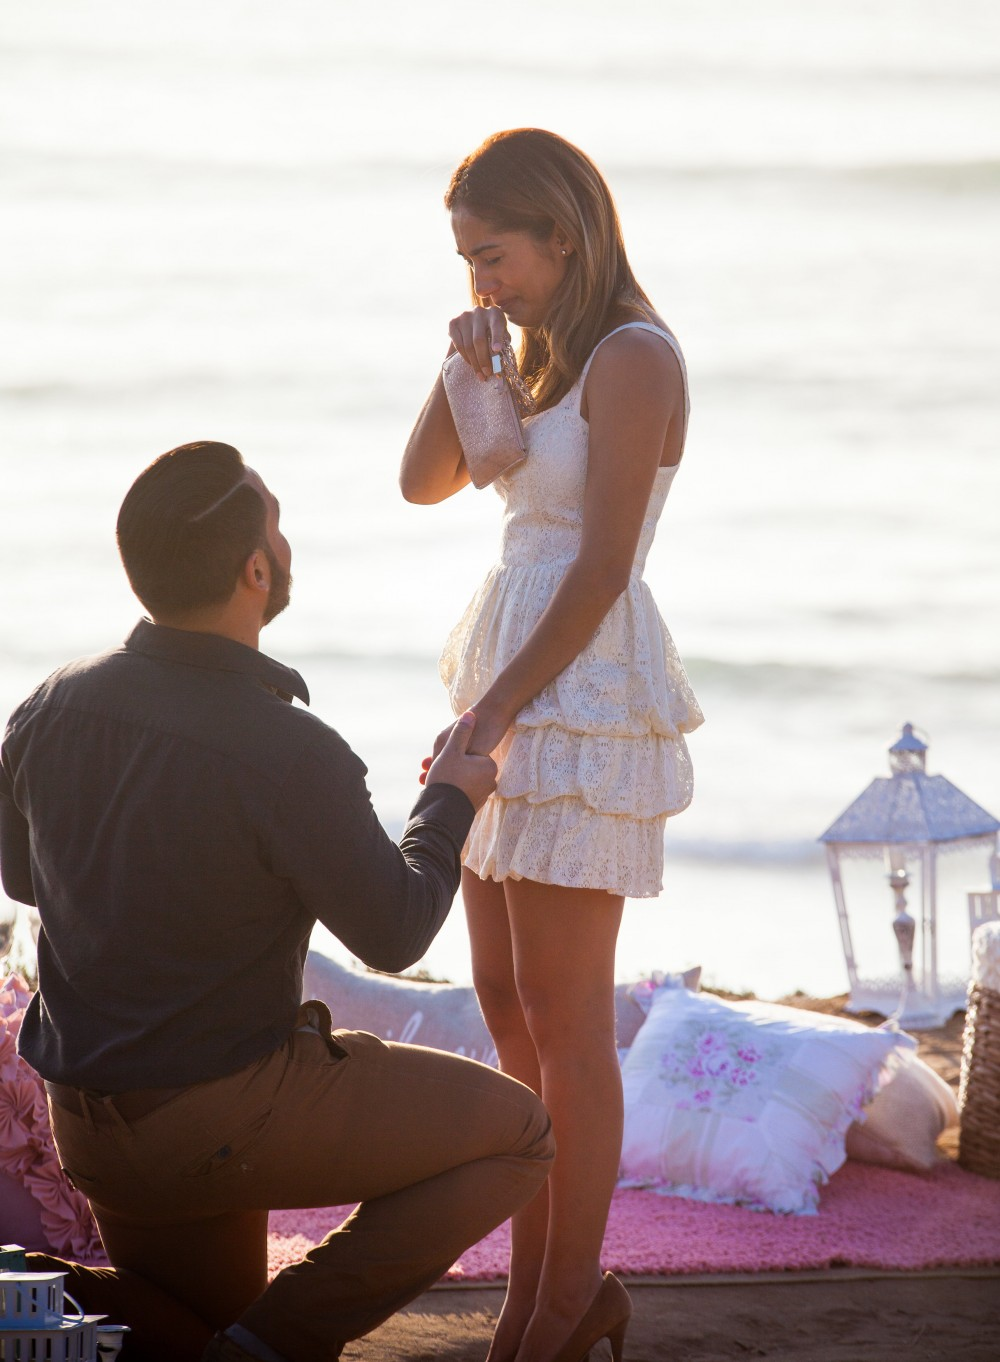 Image 7 of Diego and Jessica's Cliff Marriage Proposal at Sunset